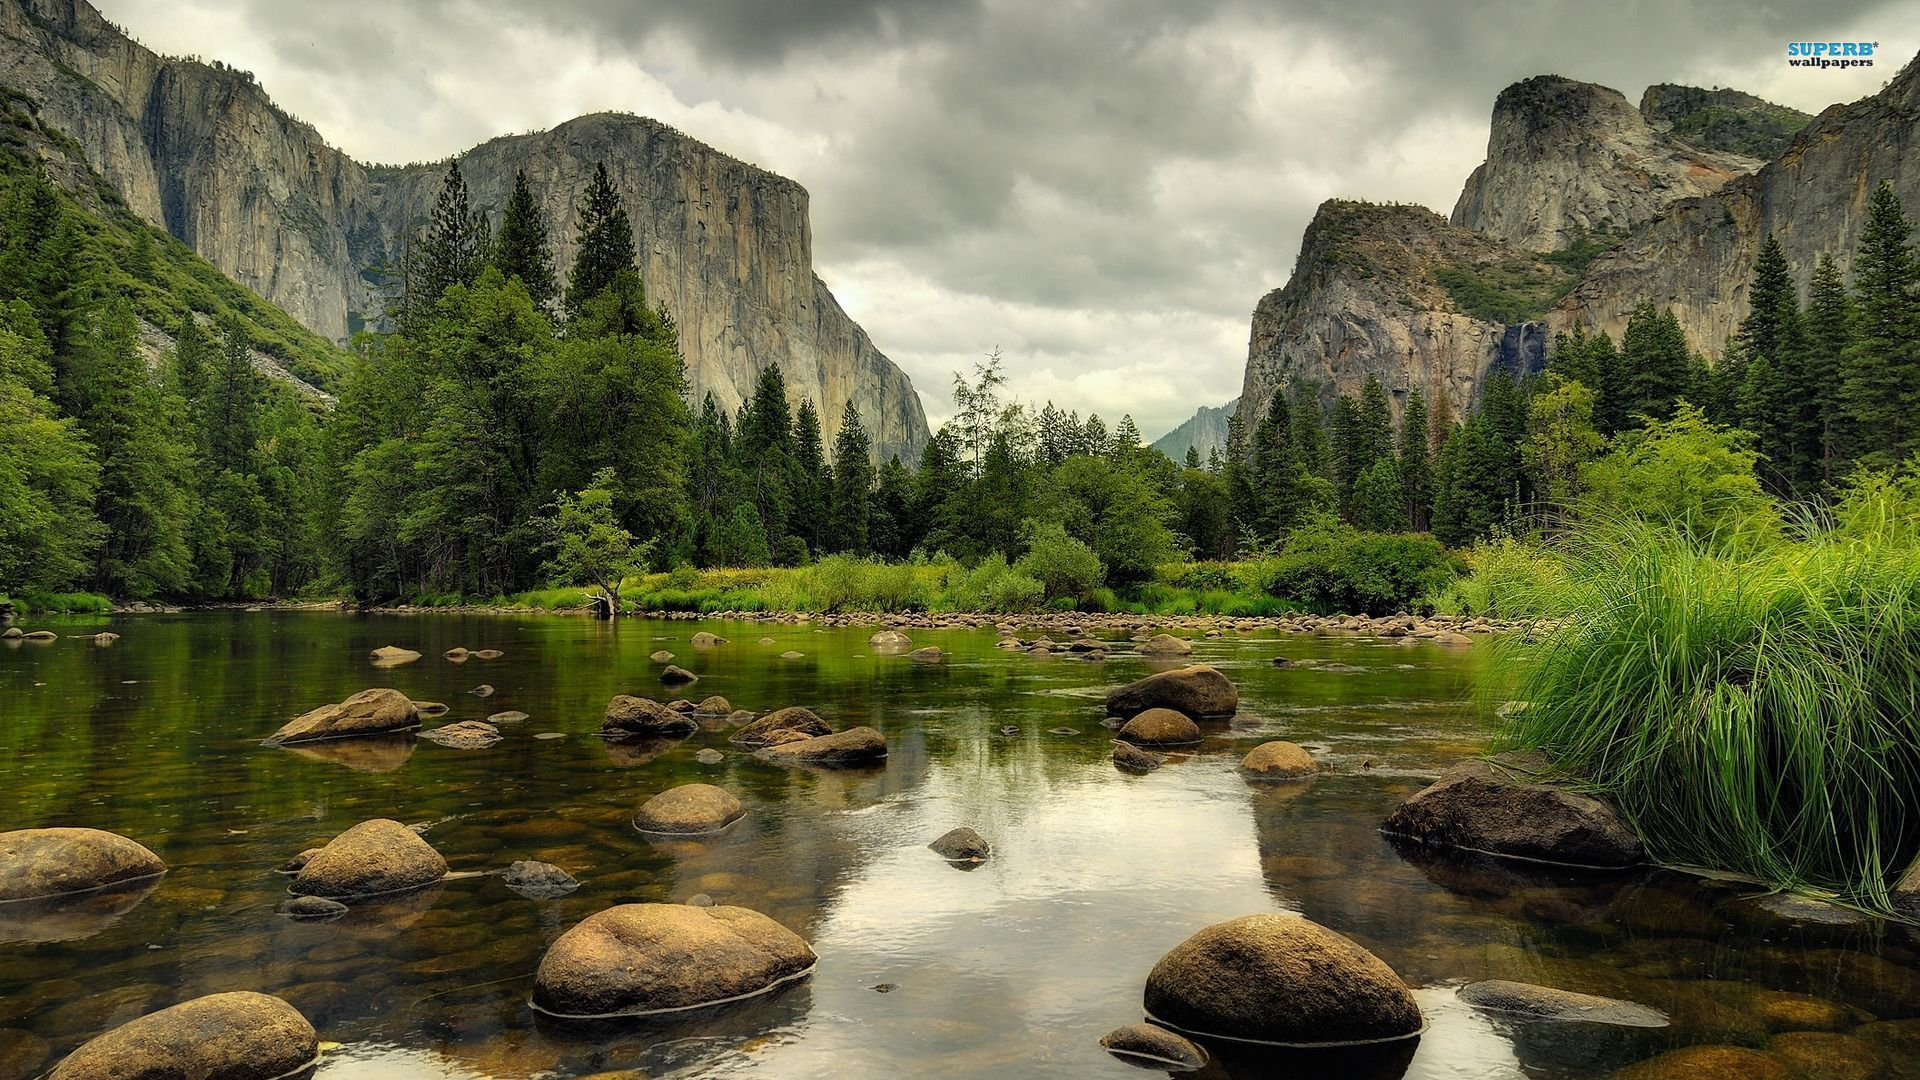 yosemite-national-park-summer - Tiverton Foundation